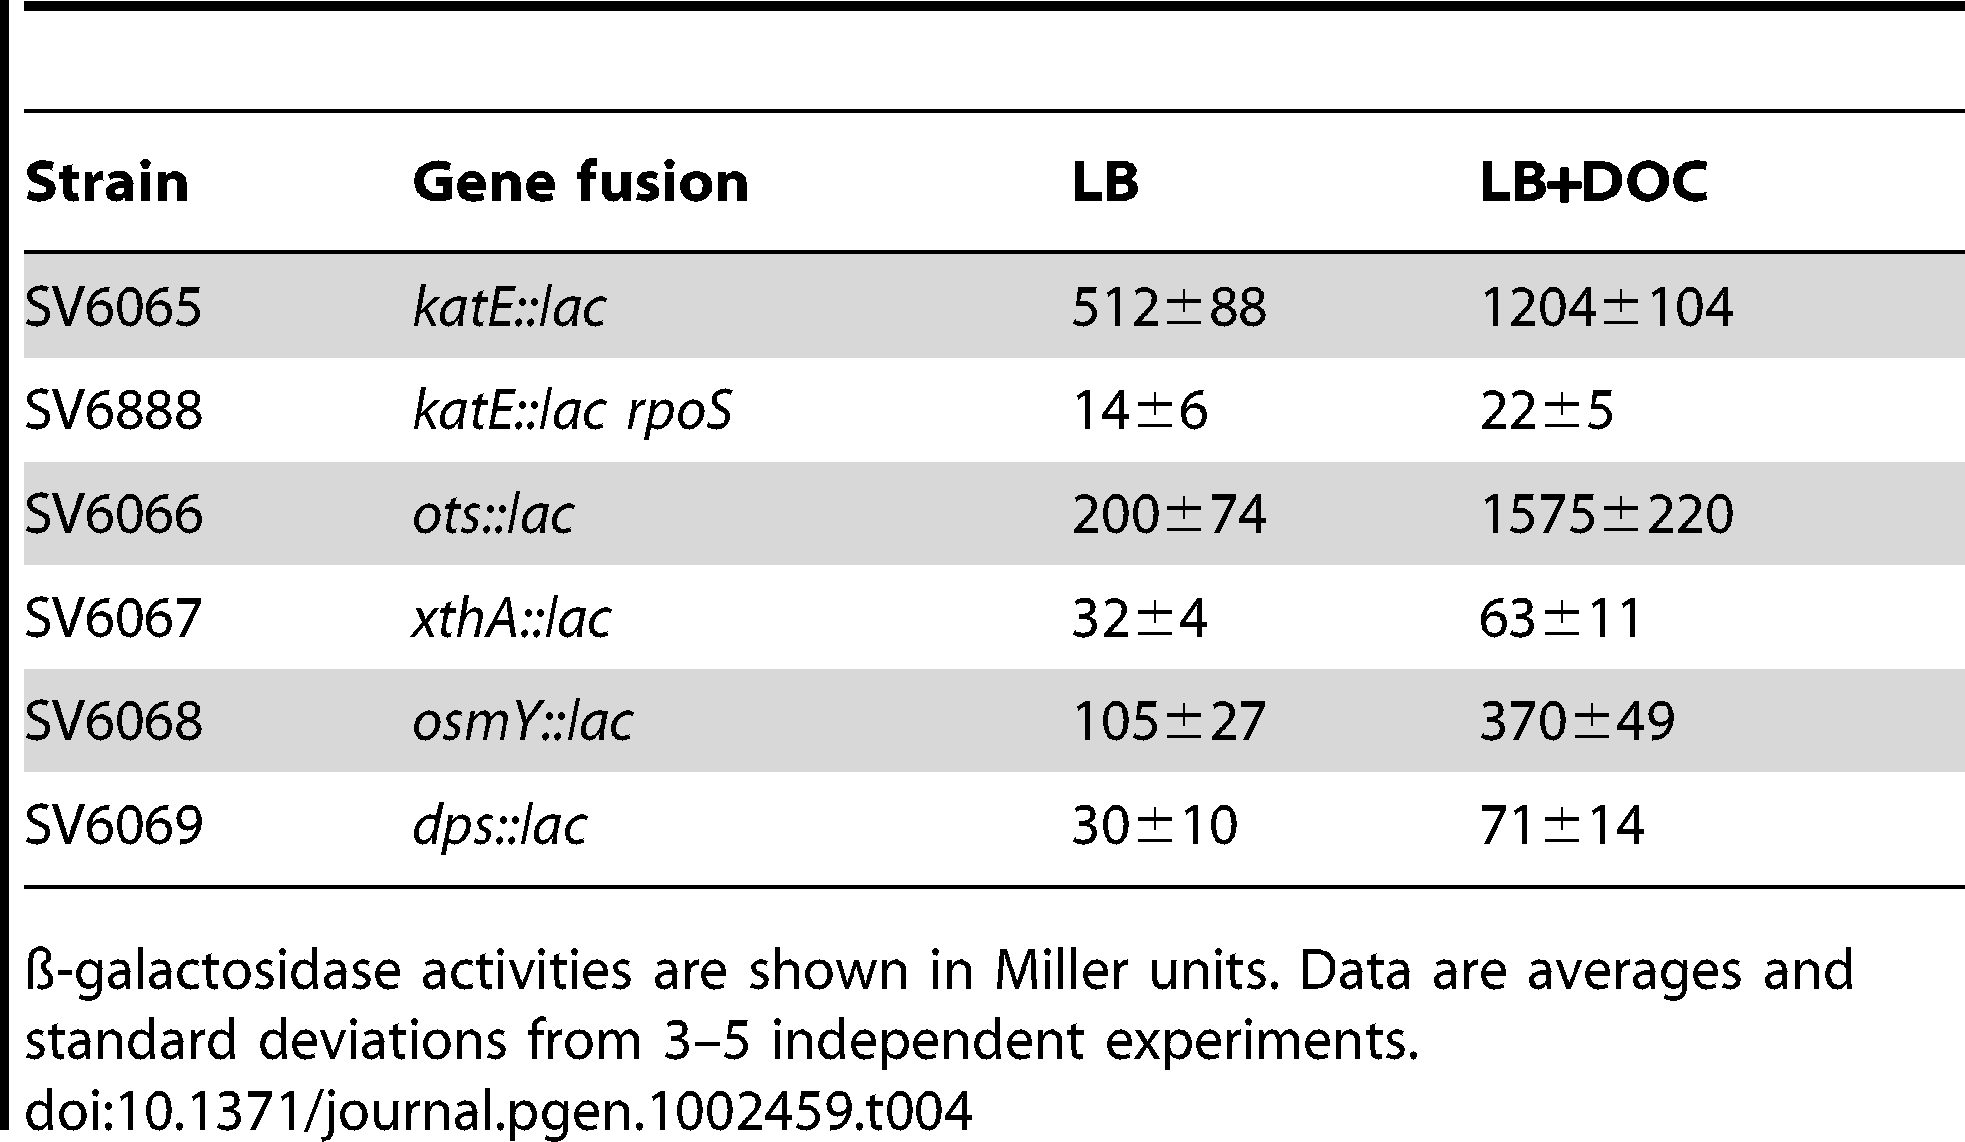 ß-galactosidase activities of <i>lac</i> fusions in RpoS-regulated genes in the presence and in the absence of sodium deoxycholate in stationary phase.